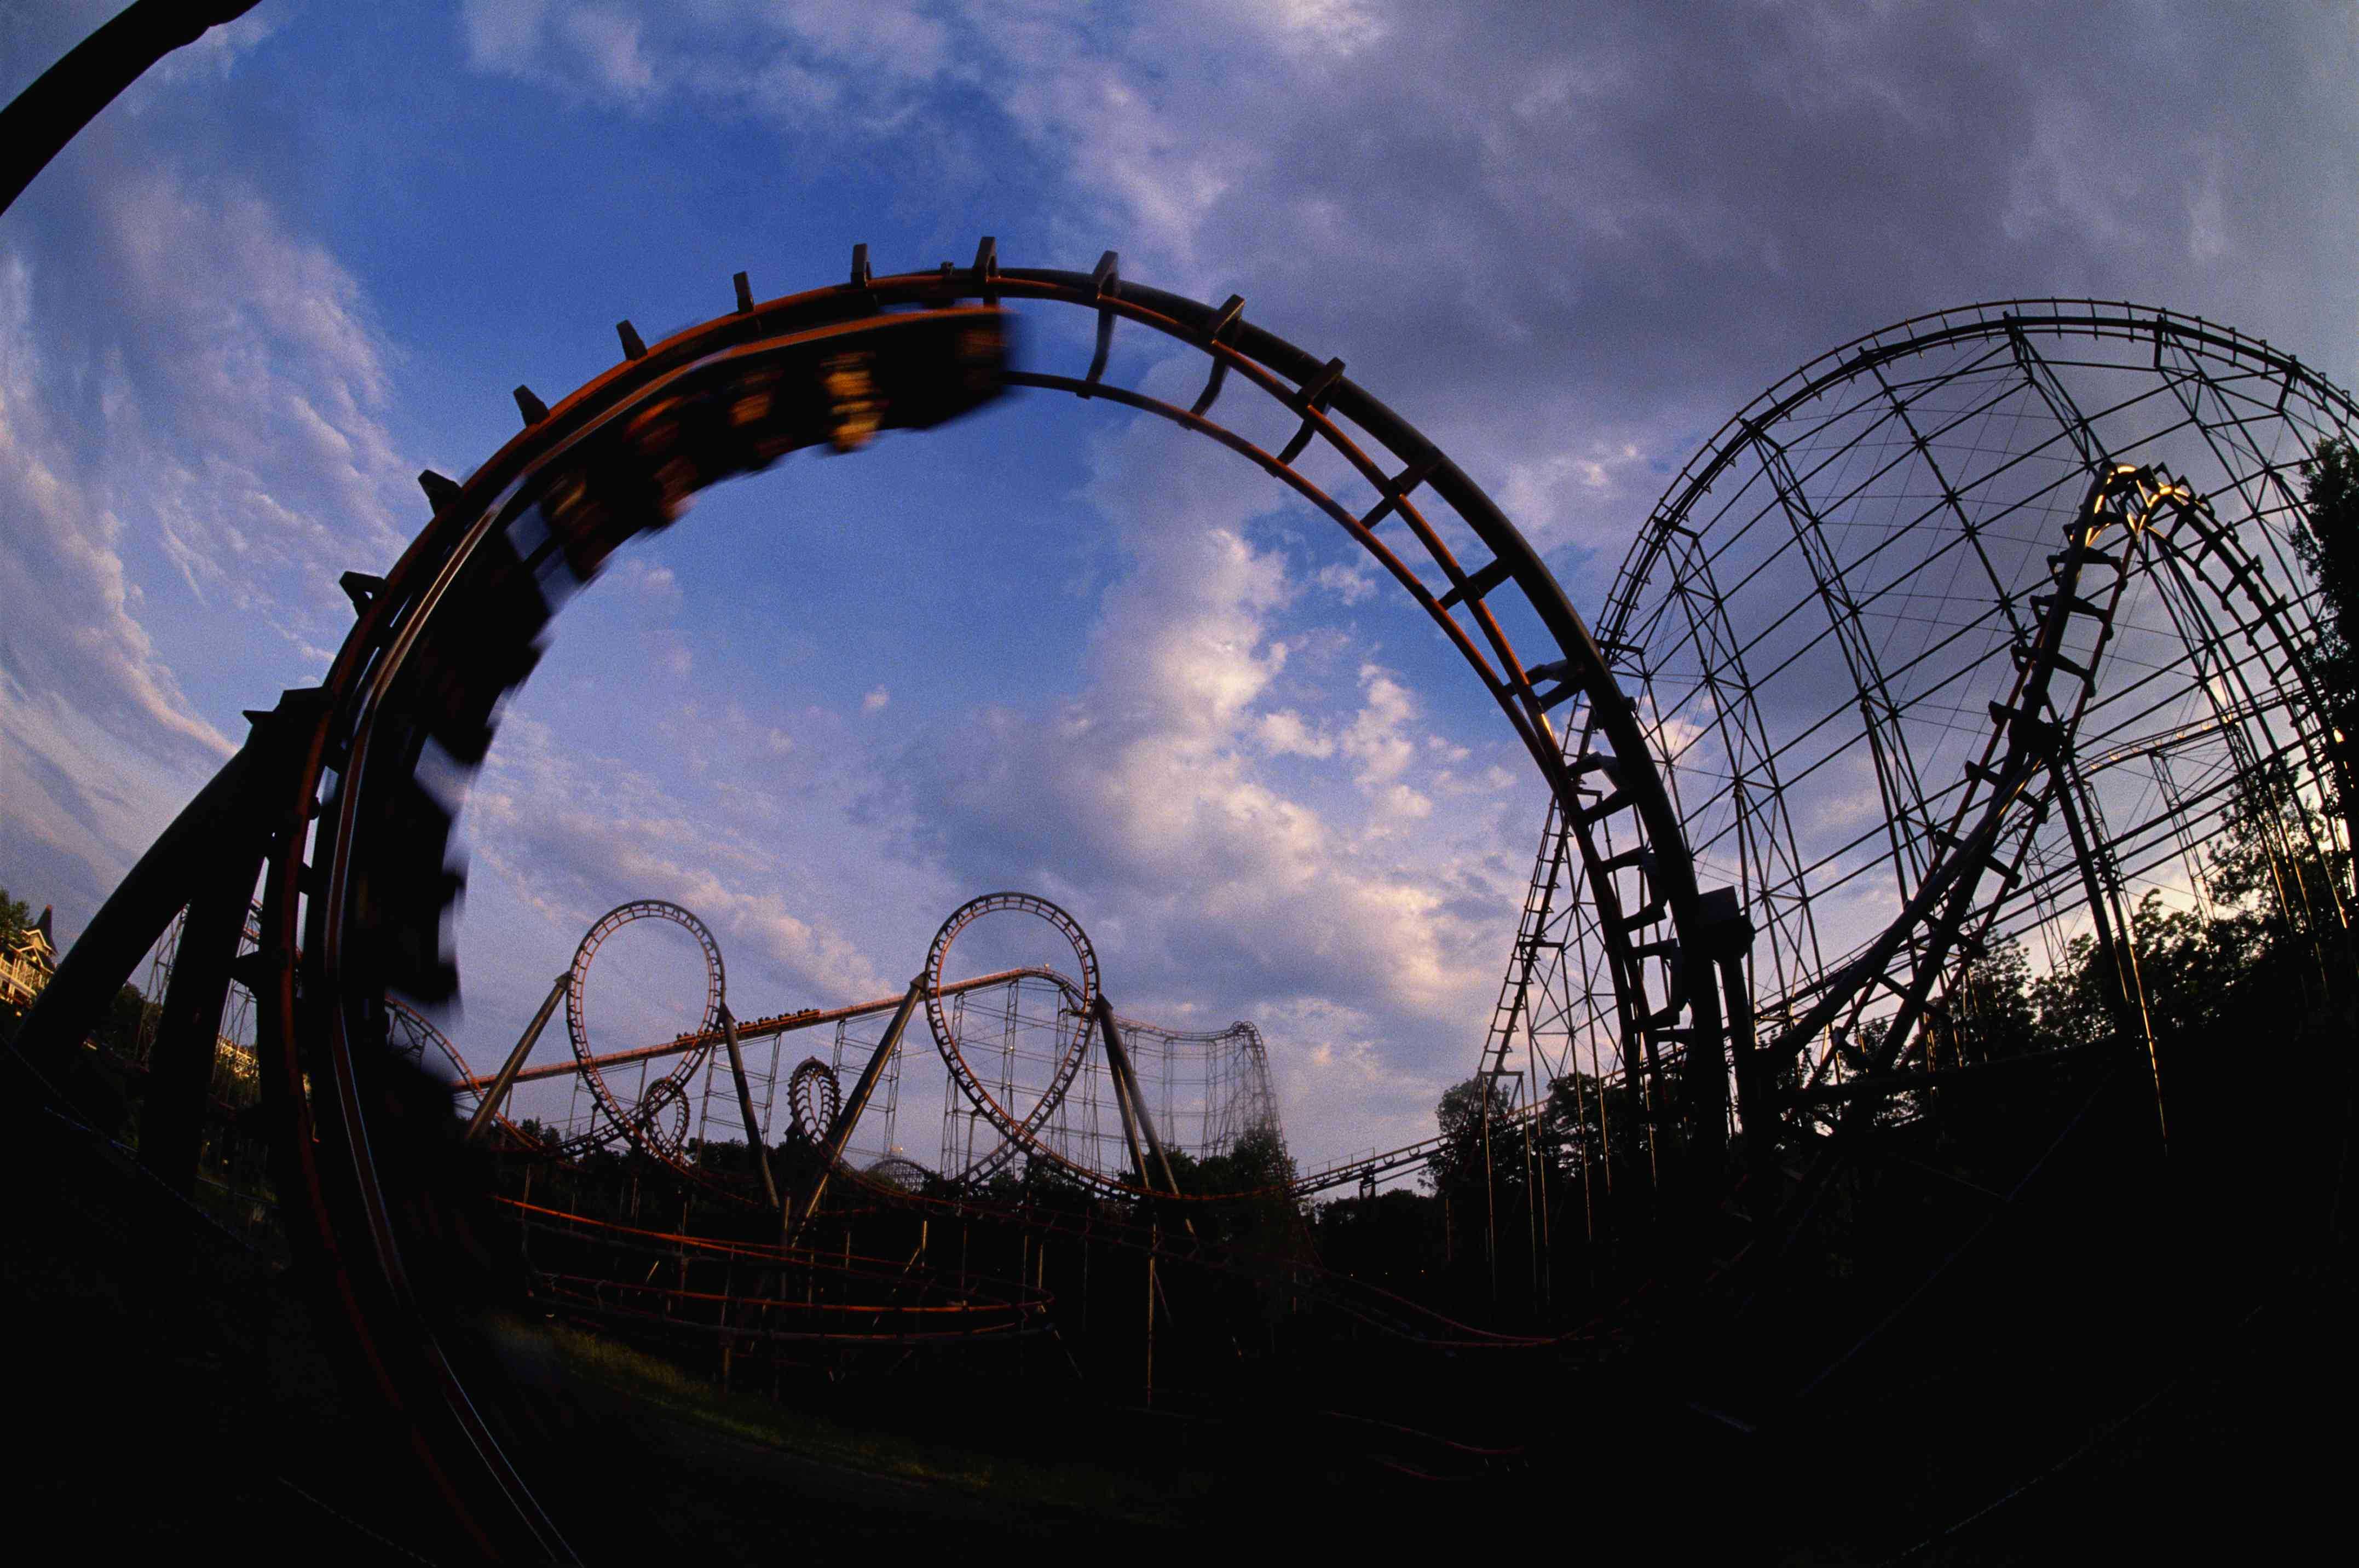 The Vortex at Kings Island